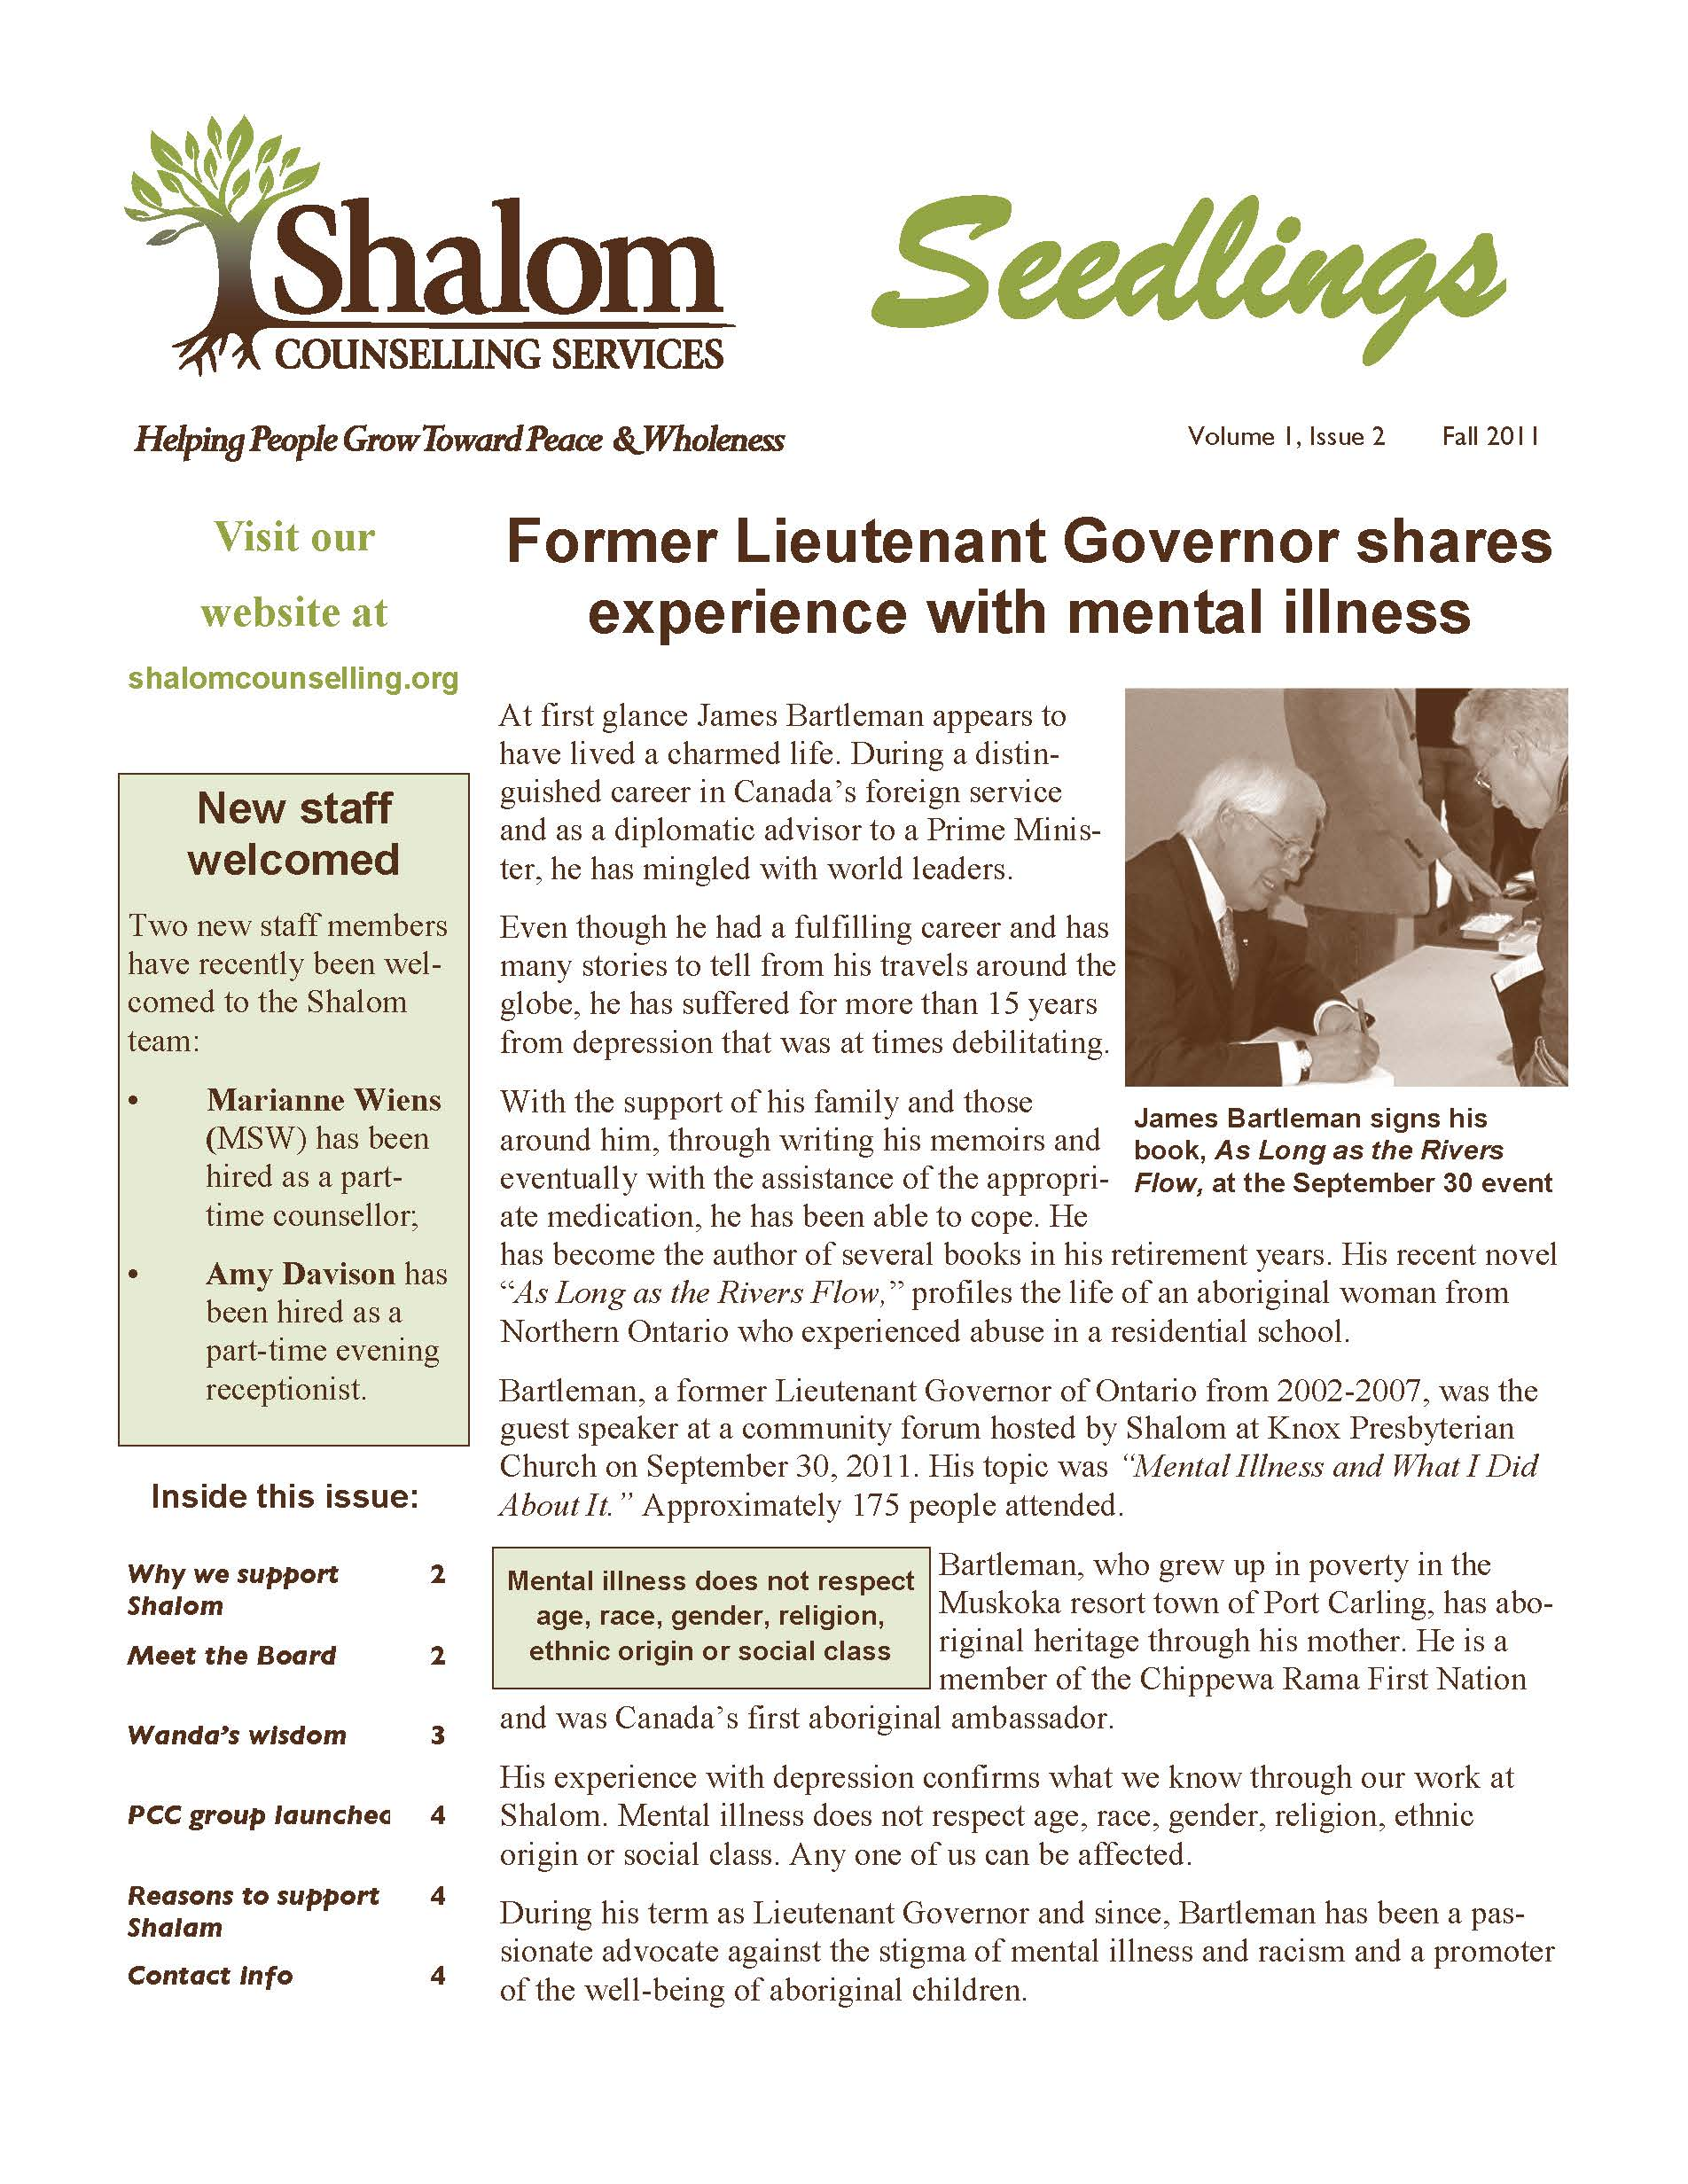 Fall 2011 Seedlings Newsletter